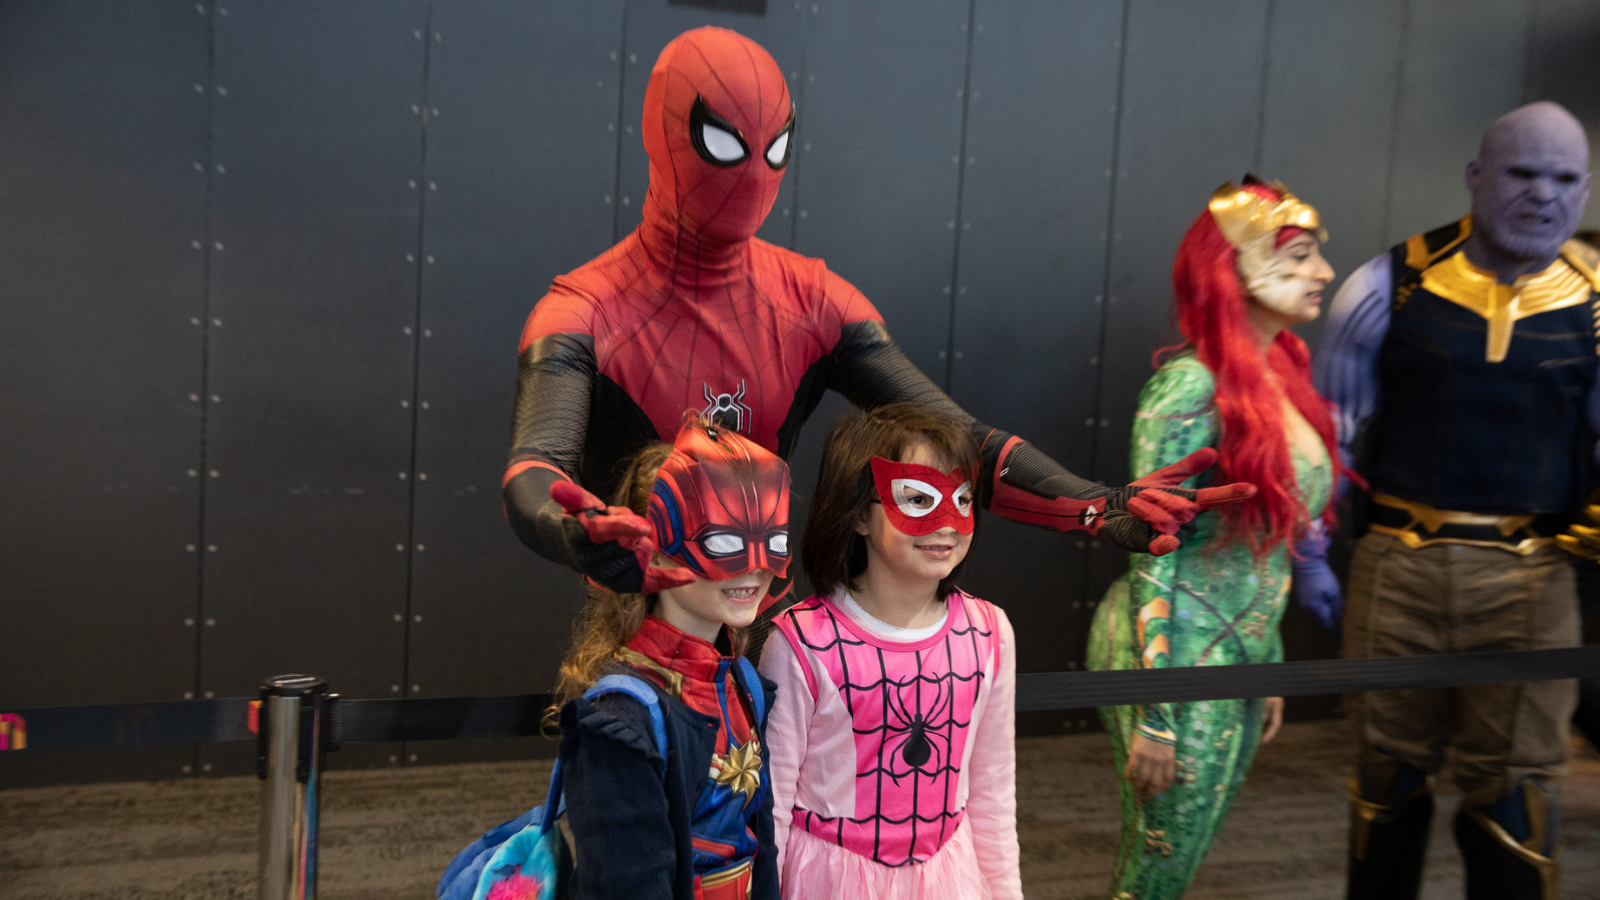 WIN // 1 of 2 Family Passes to Oz Comic-Con